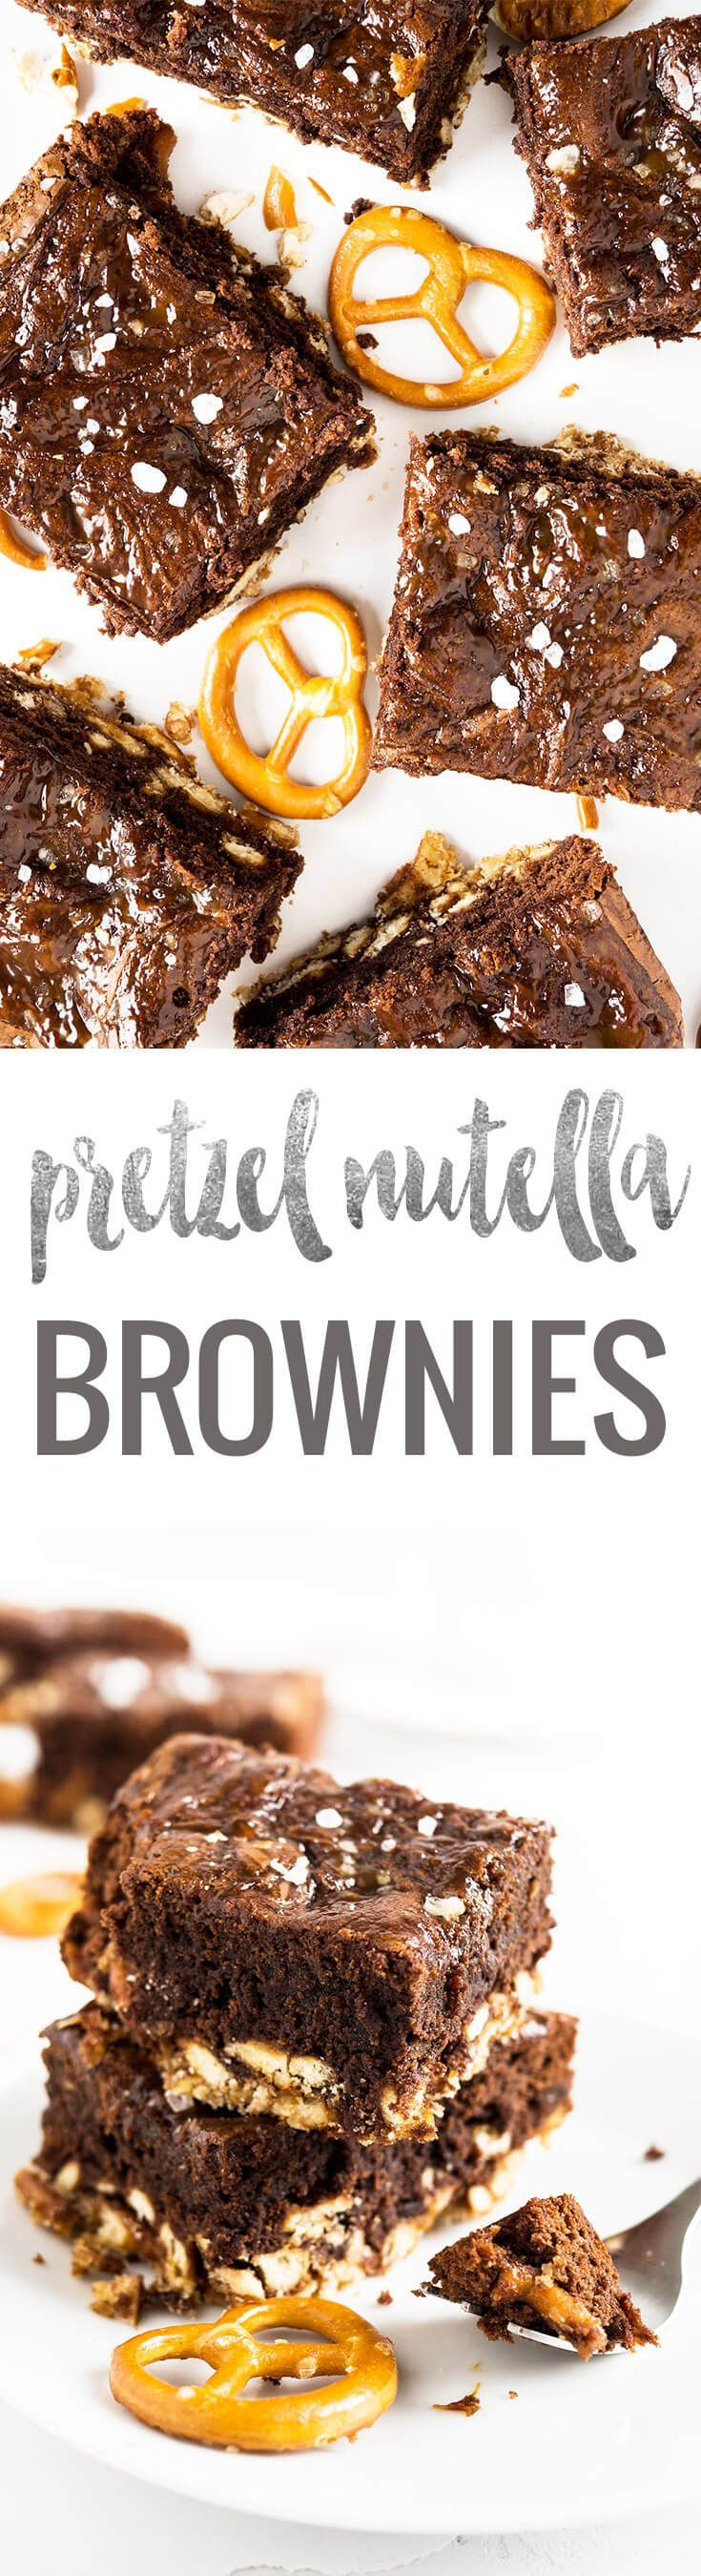 Salted Caramel Pretzel Brownies have a crunchy pretzel crust and are made with Nutella! These are not ordinary brownies, they are chewy, salty, sweet, chocolatey, and crunchy!